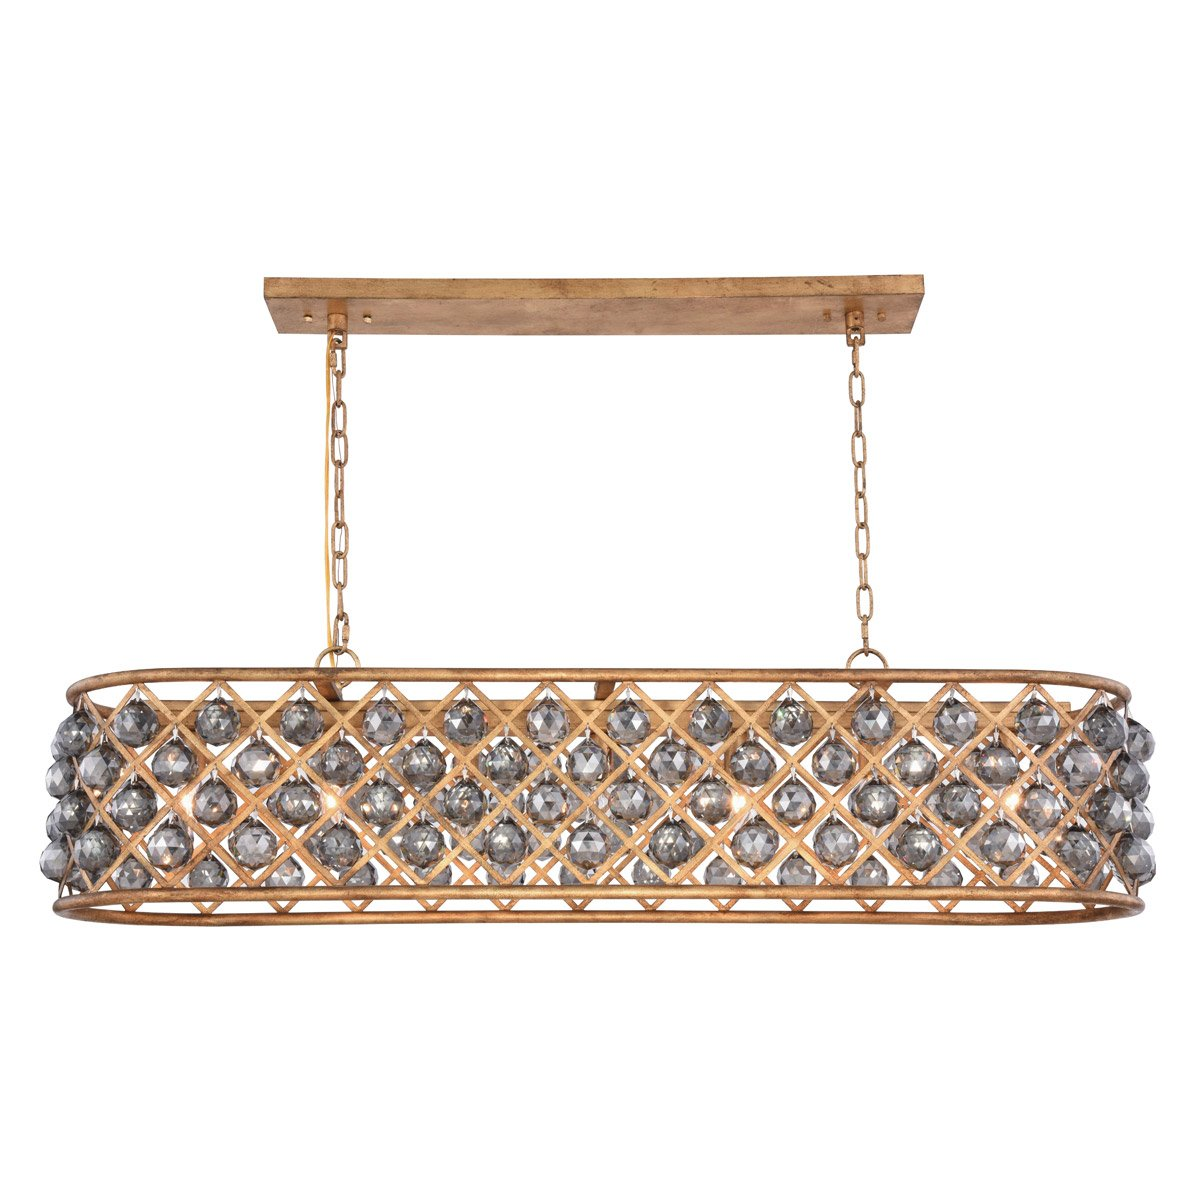 Madison 50 Crystal Island Pendant Chandelier With 7 Lights - Golden Iron Finish And Grey Crystal Chandelier